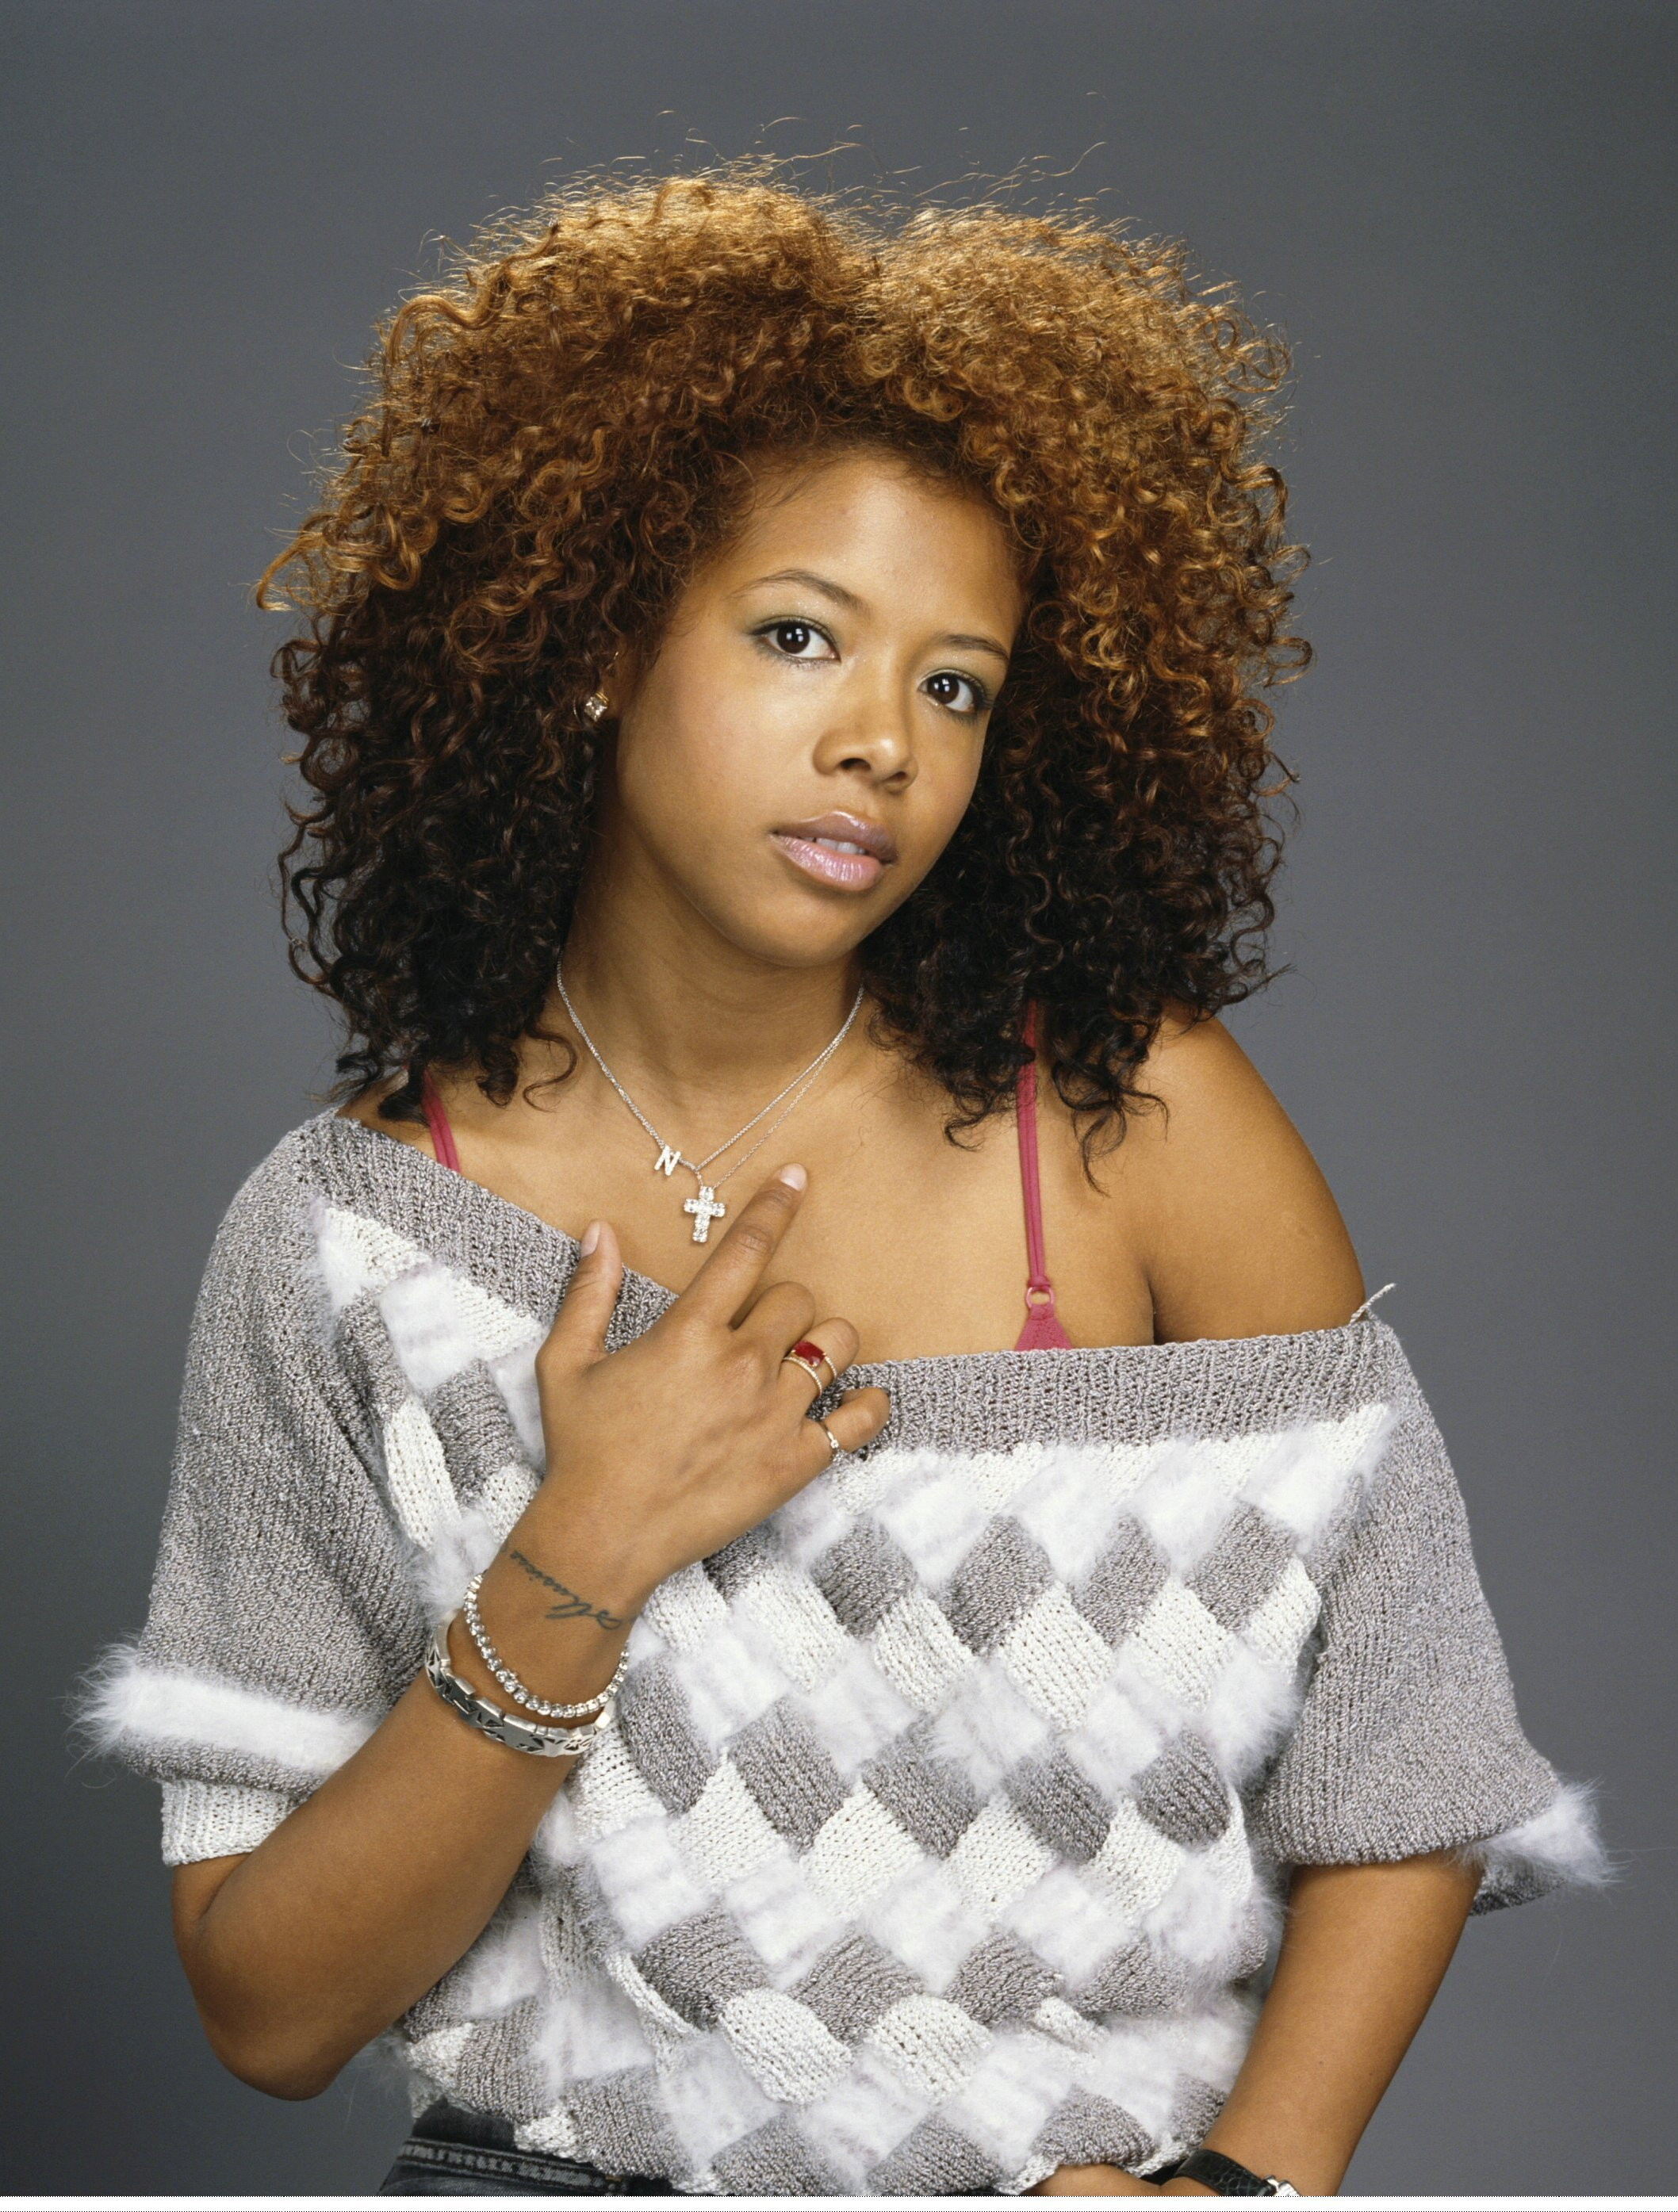 Kelis Photo 24 Of 30 Pics Wallpaper Photo 132059